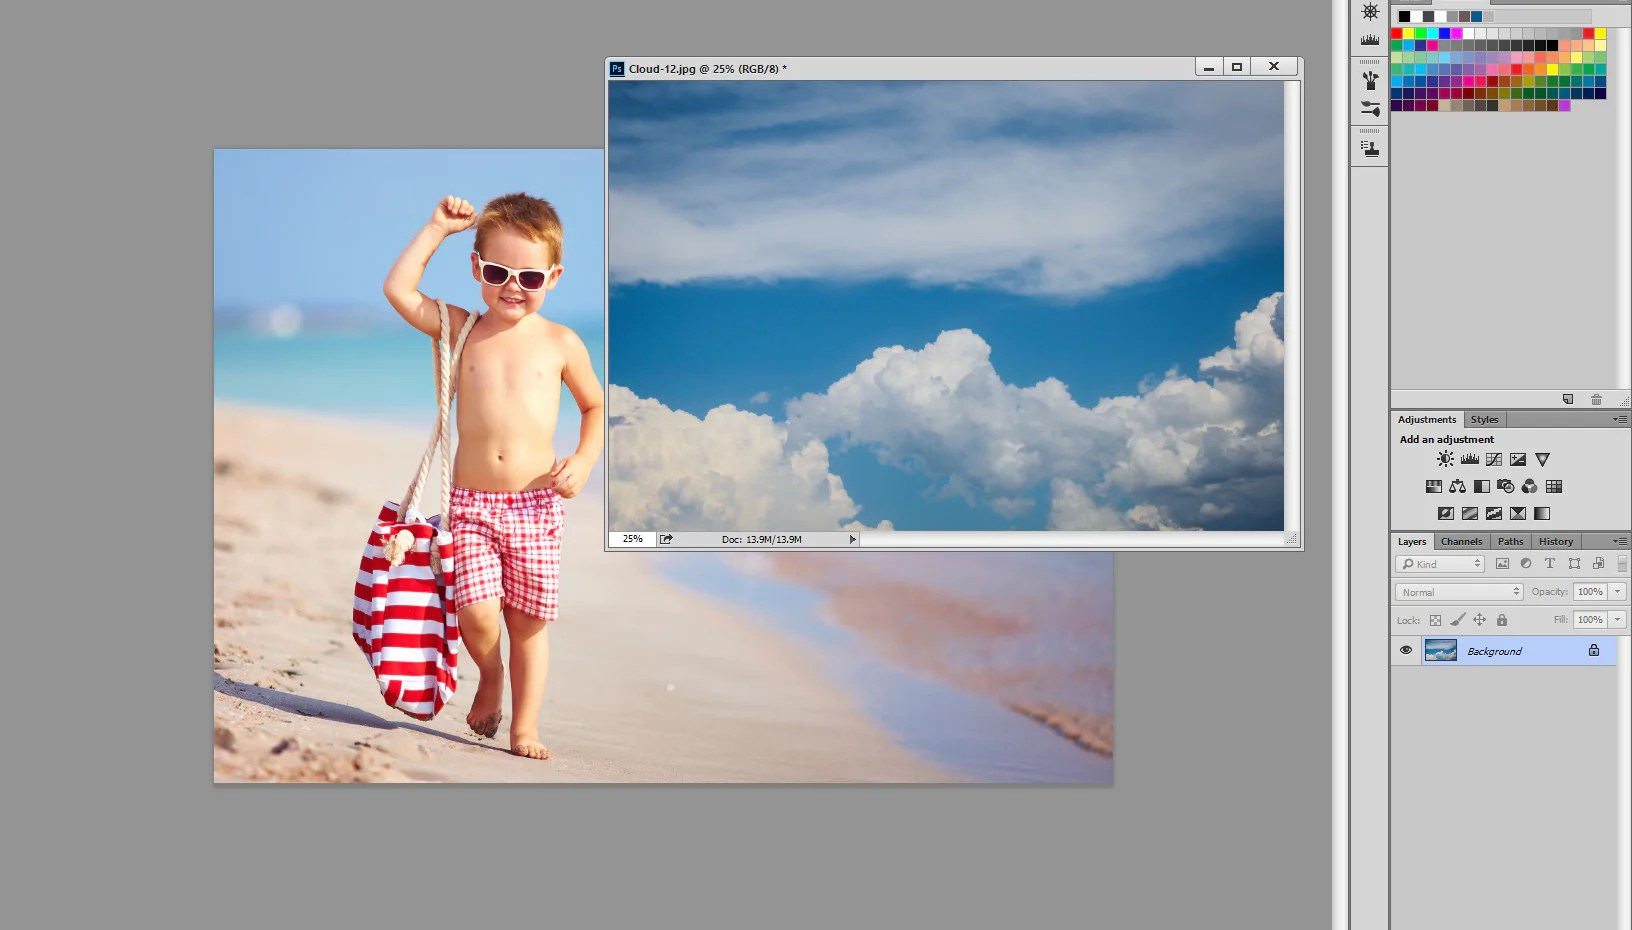 Formidable Photoshop Photoshop Actions Photoshop Gaussian Blur Edges Photoshop Blur Edges How To Blend Sky Overlays Blending Sky Overlays Cut Out dpreview Photoshop Blur Edges